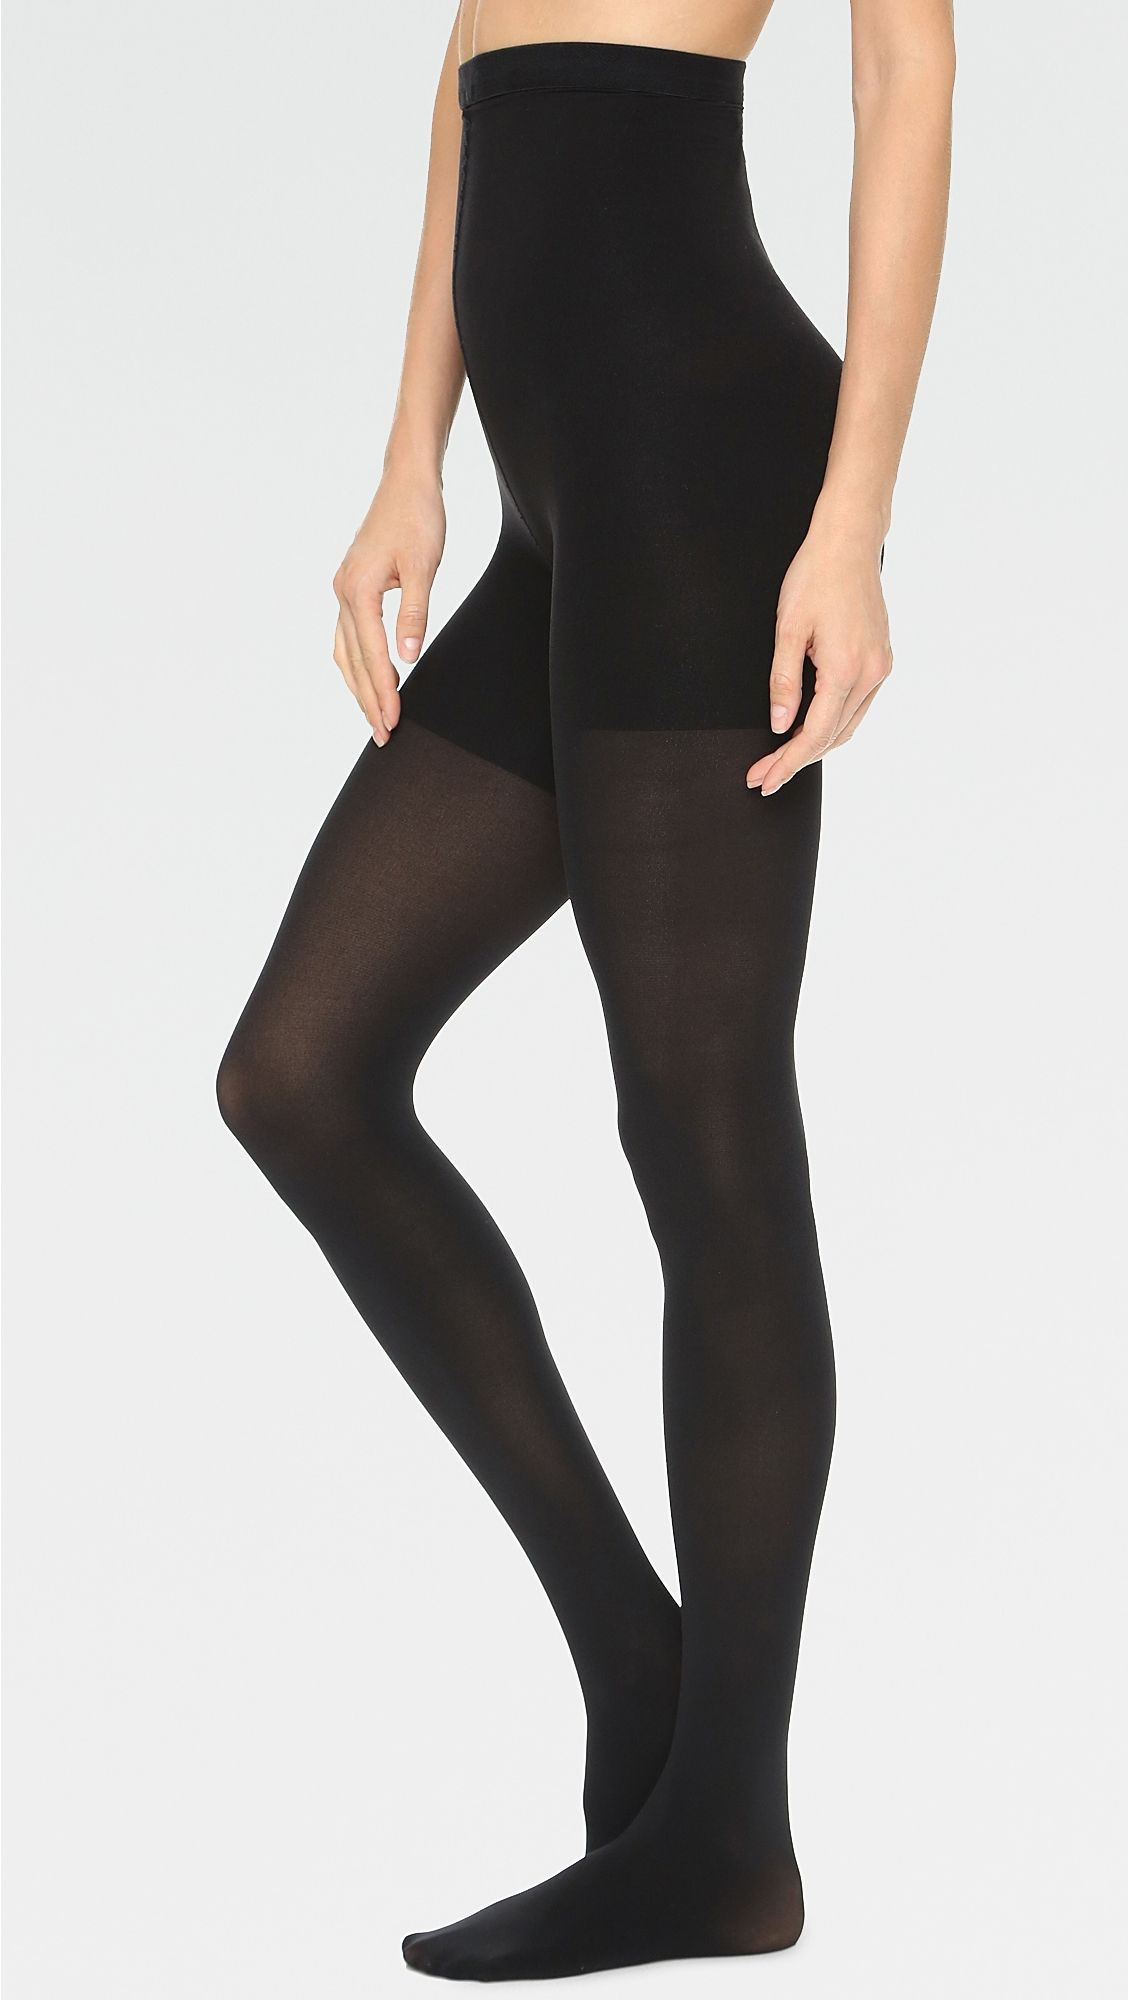 0efcbff0a1e0b SPANX High Waisted Luxe Leg Tights in 2019 | Products | High waisted ...